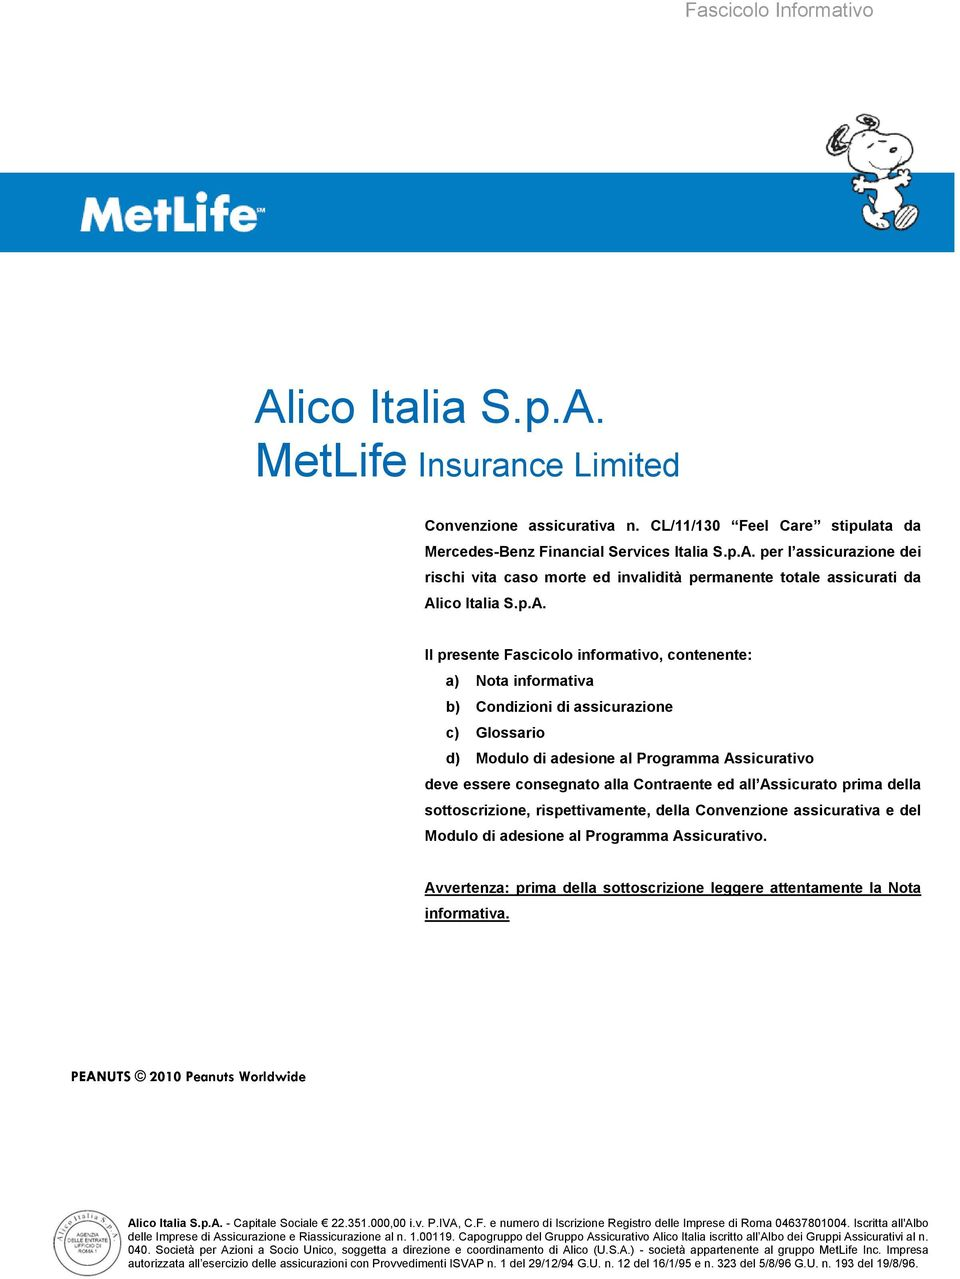 alico italia s.p.a. metlife insurance limited - pdf